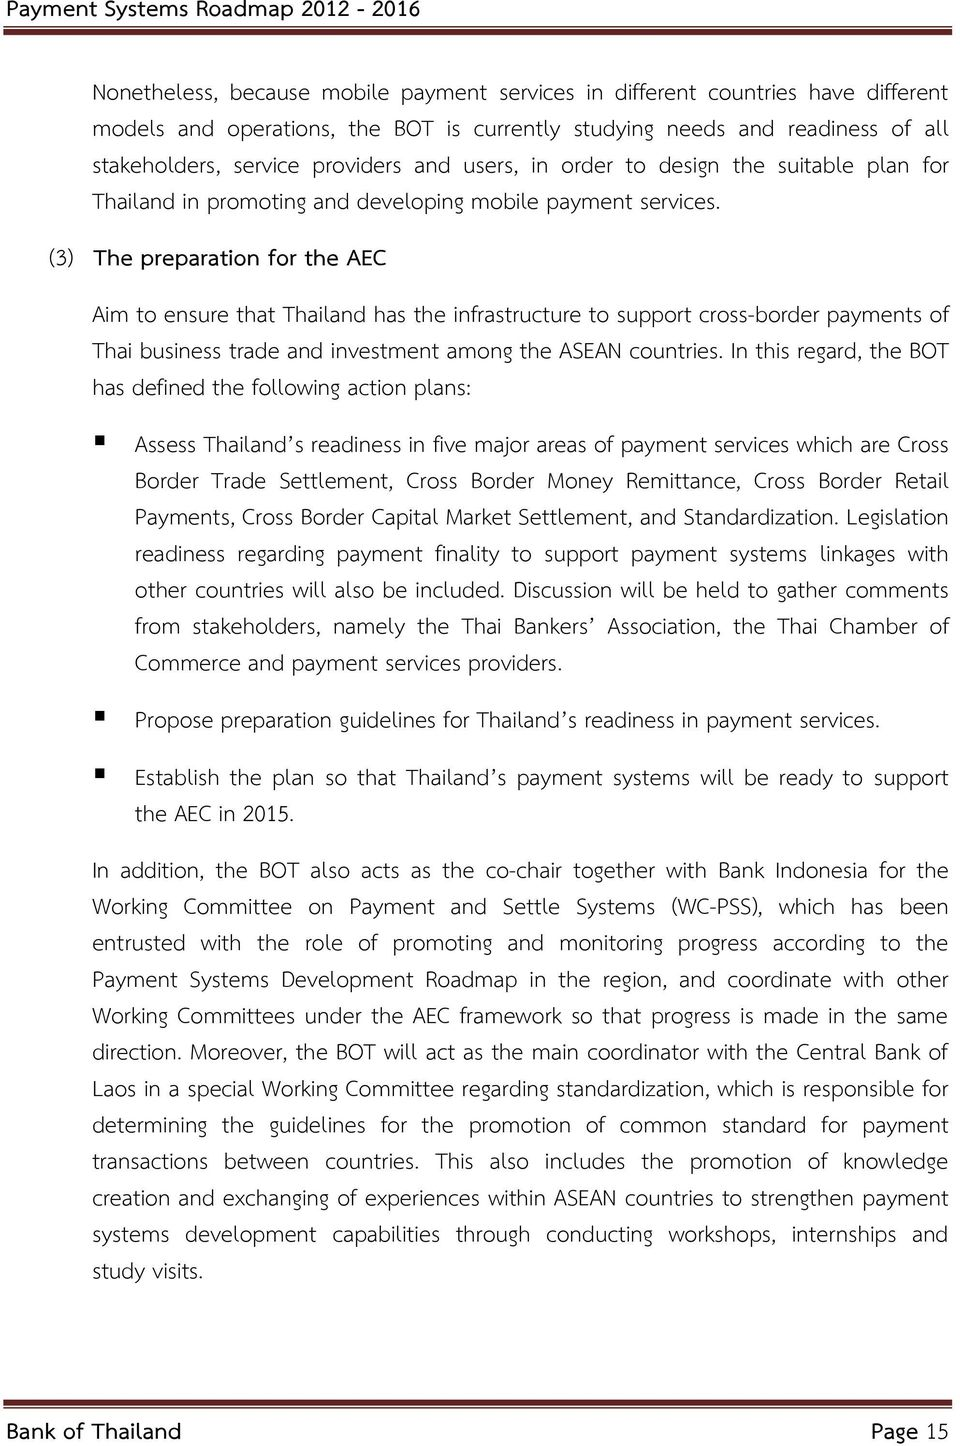 (3) The preparation for the AEC Aim to ensure that Thailand has the infrastructure to support cross-border payments of Thai business trade and investment among the ASEAN countries.